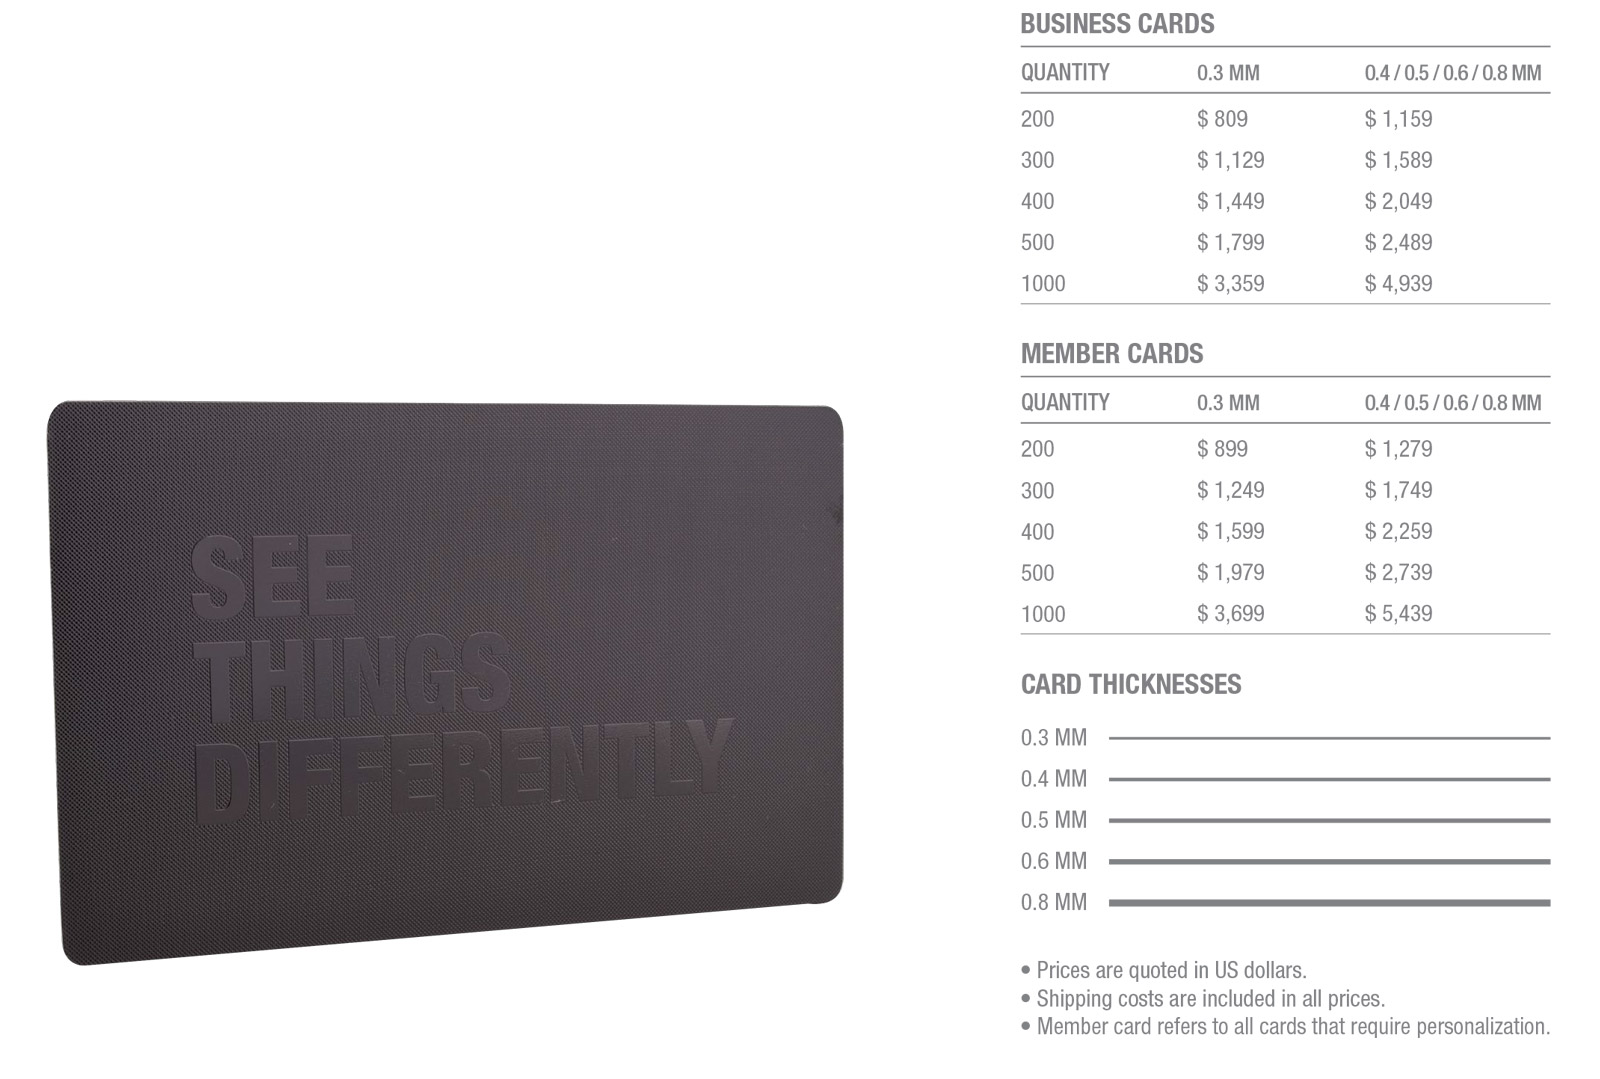 Matt-Black-Prism-Stainless-Steel-Cards-Pricing-Table